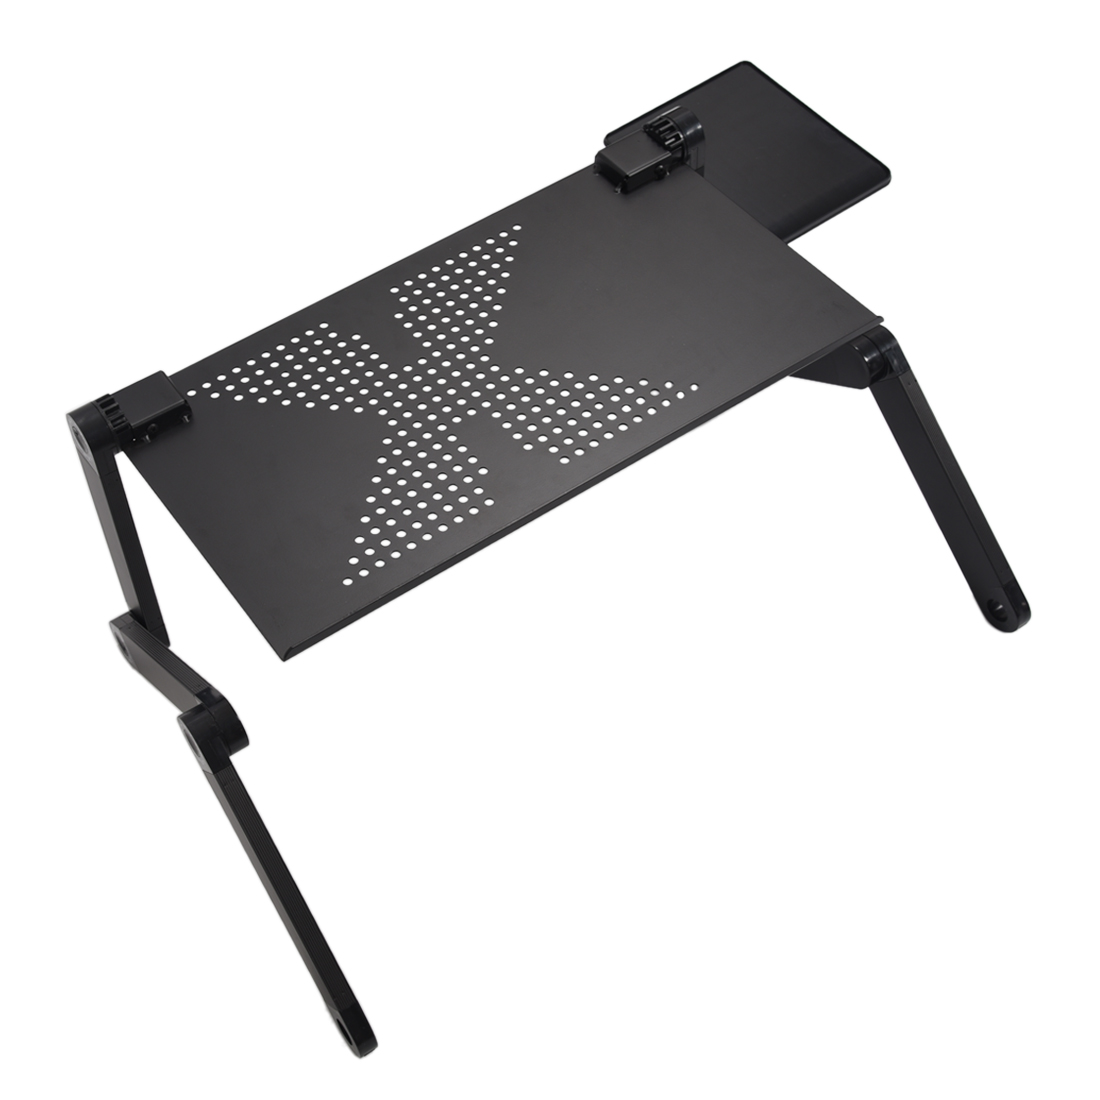 Portable adjustable laptop desk computer table stand tray - Table de ventilation pour pc portable ...